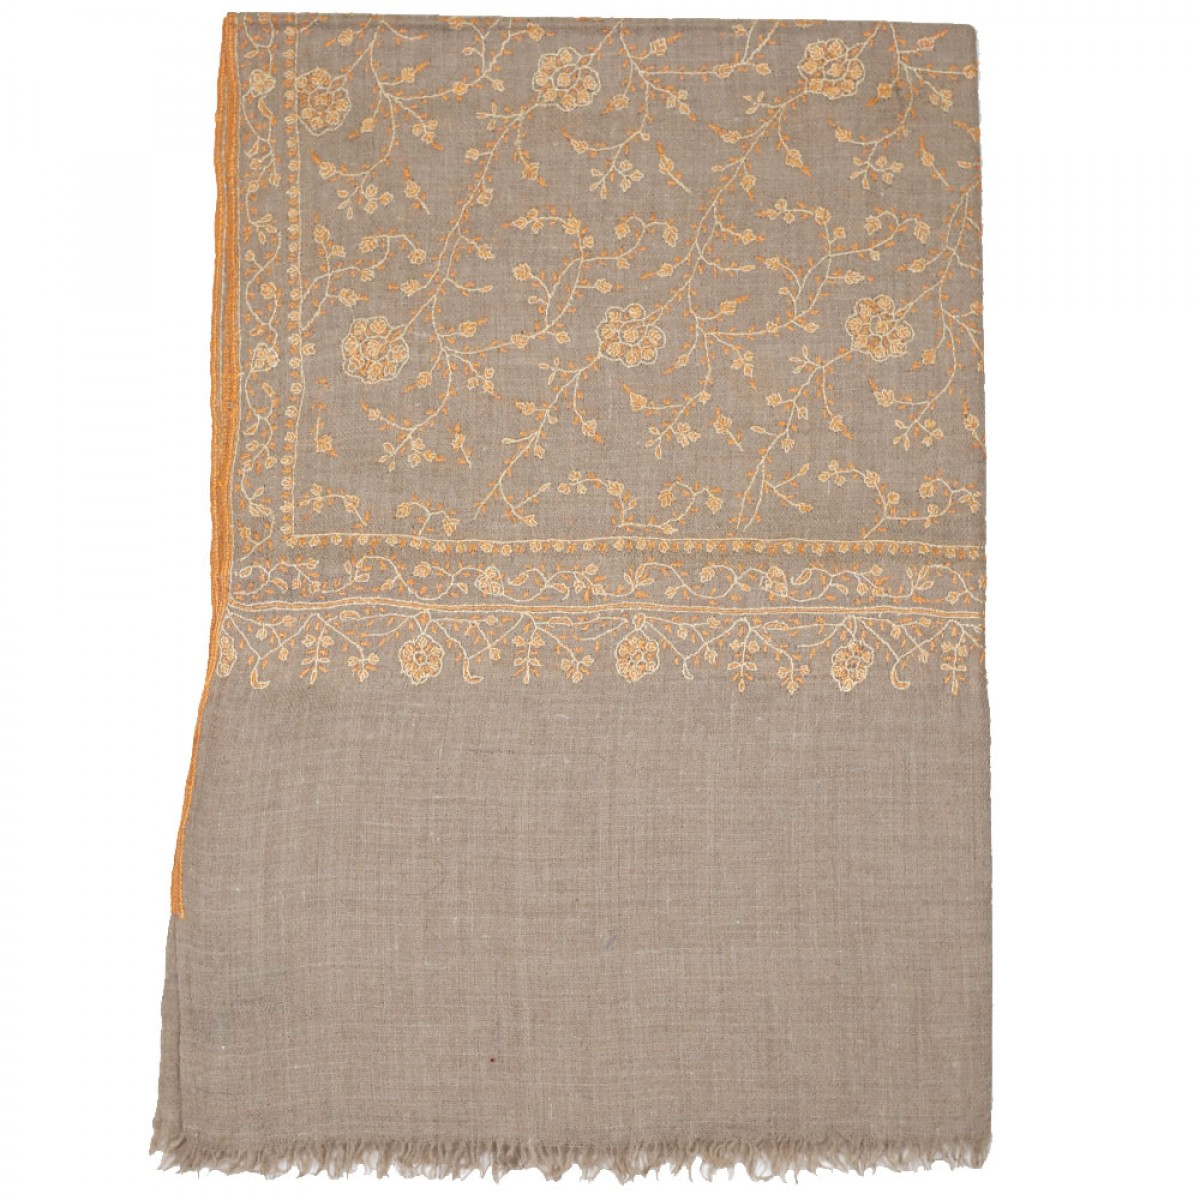 Embroidered Handloom Pashmina Stole - Camel Orange